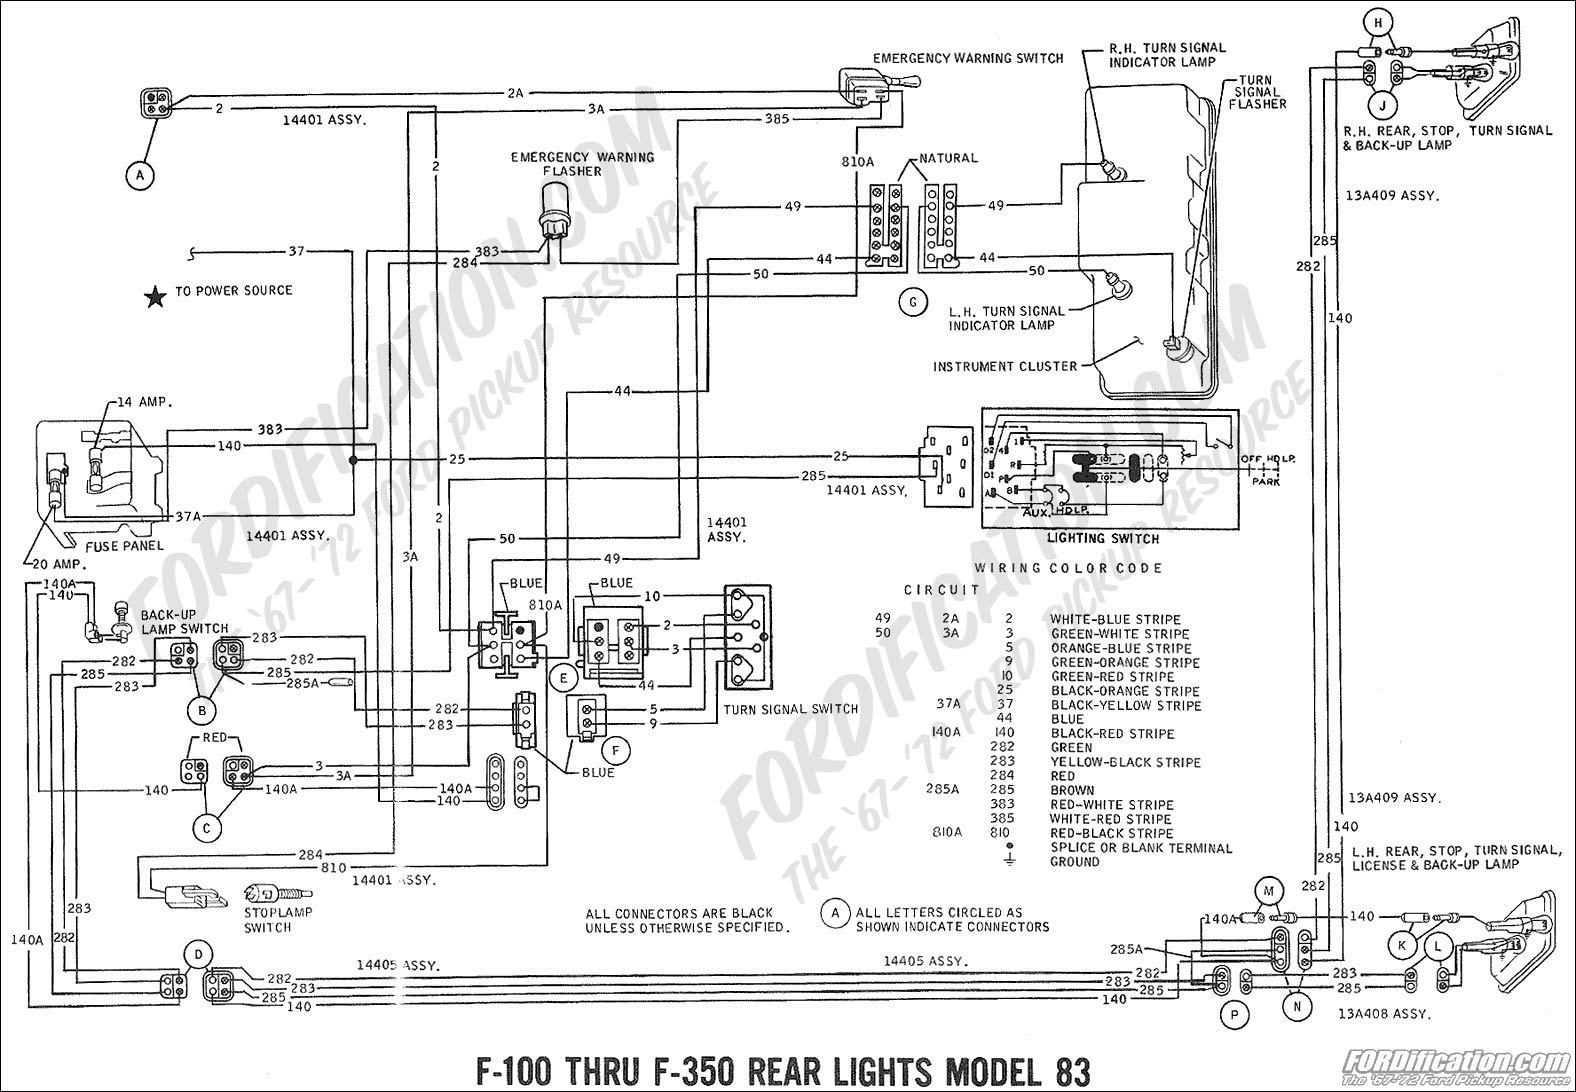 [DIAGRAM] 1951 Ford Turn Signal Wiring Diagram FULL